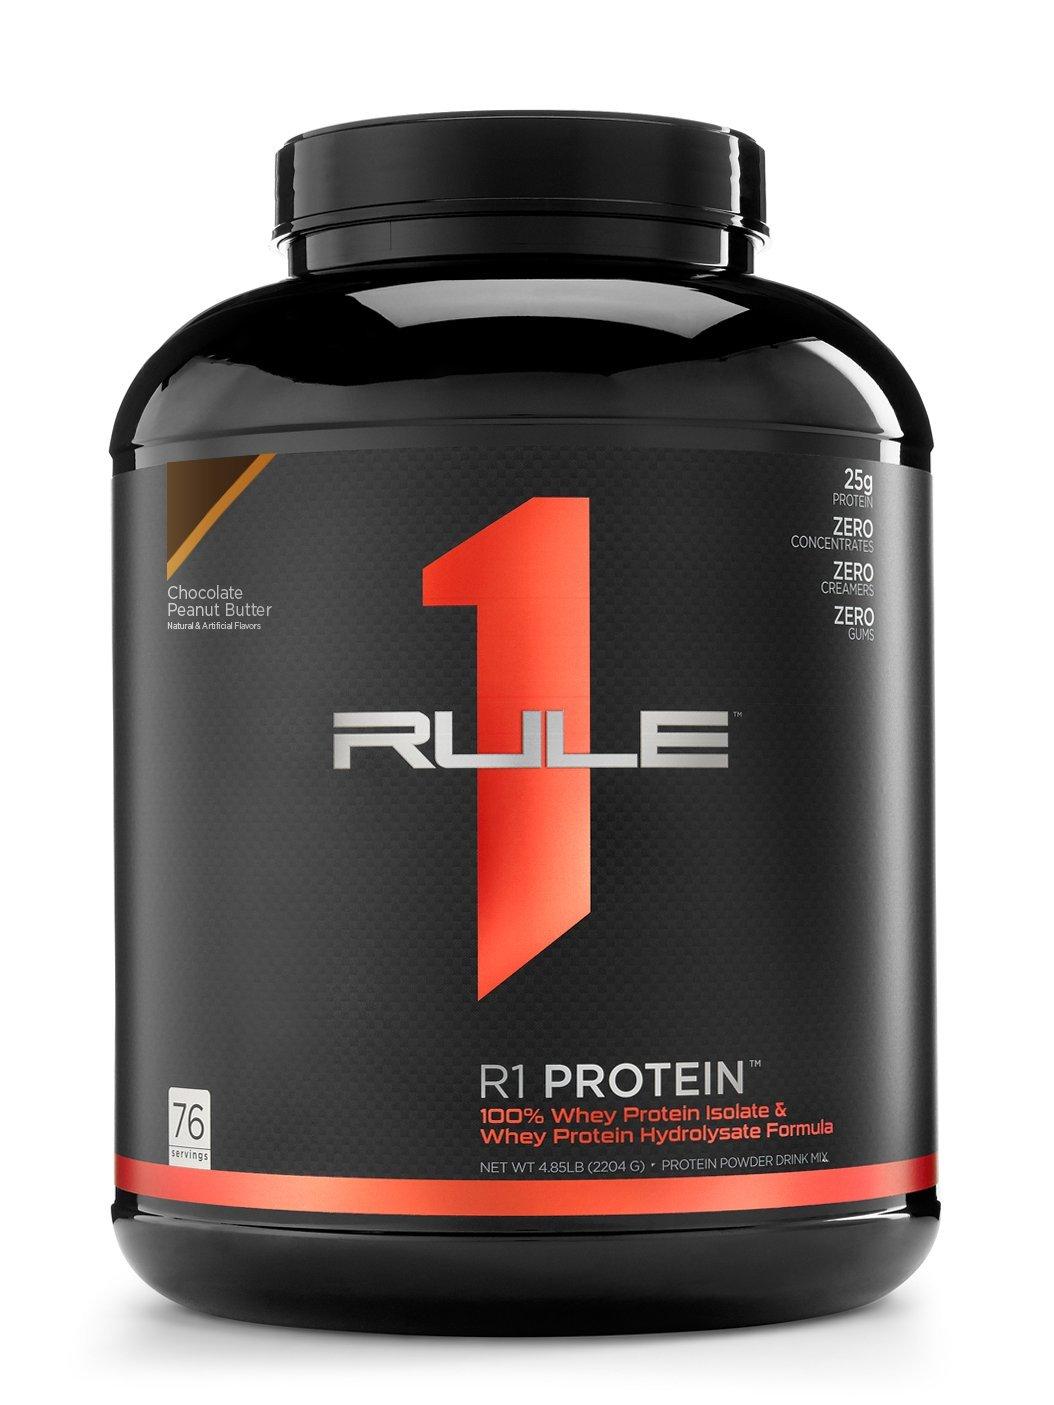 R1 Protein Whey Isolate/Hydrolysate, Rule 1 Proteins (76 Servings, Chocolate Peanut Butter)